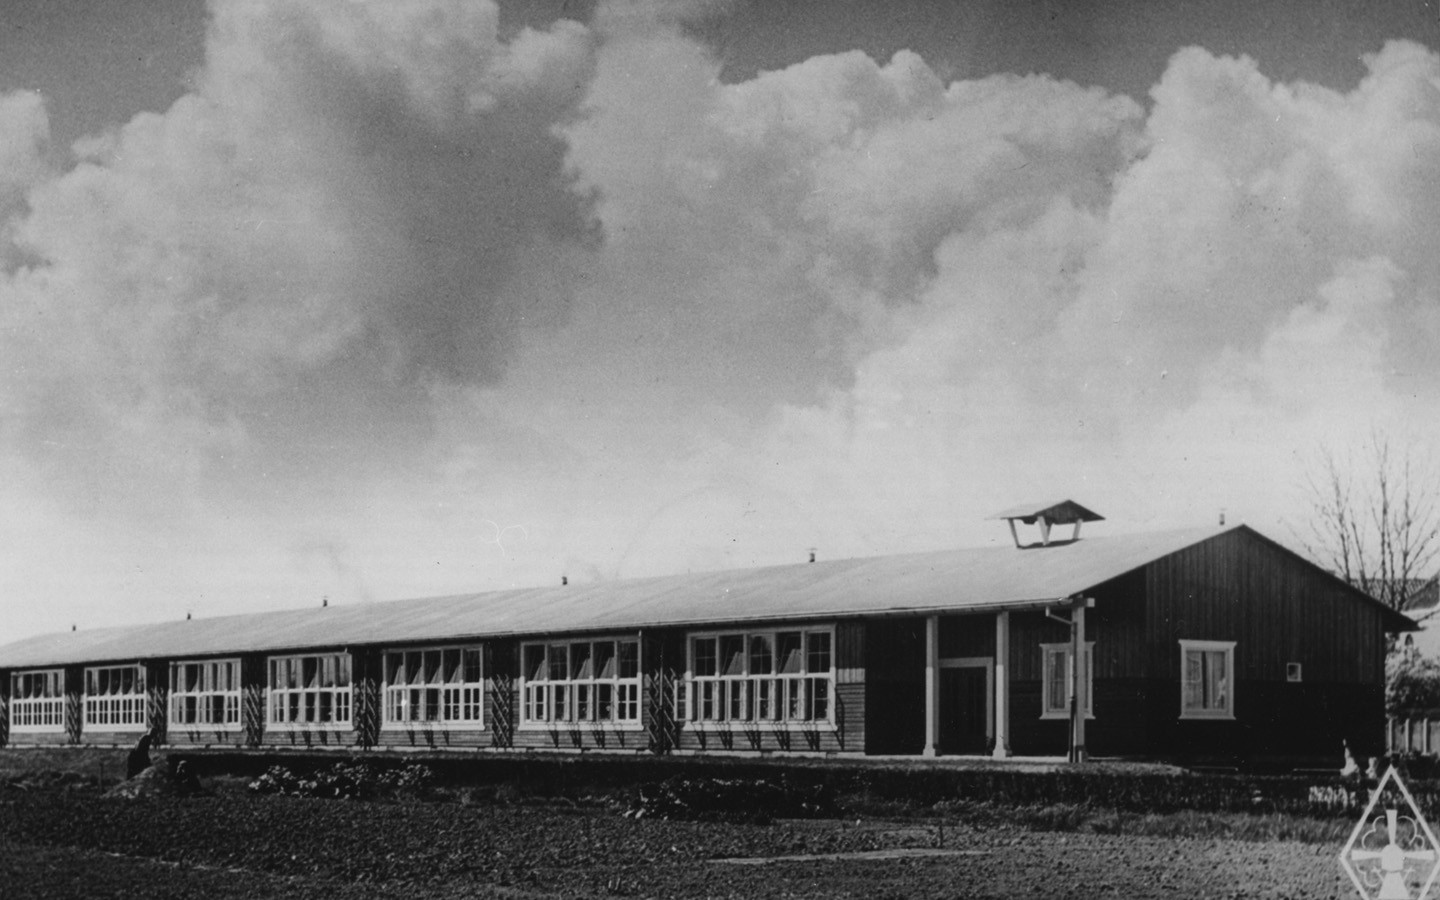 Black and white picture of a long one-storey school building with a pitched roof. Dark-painted wooden facades, white window frames.